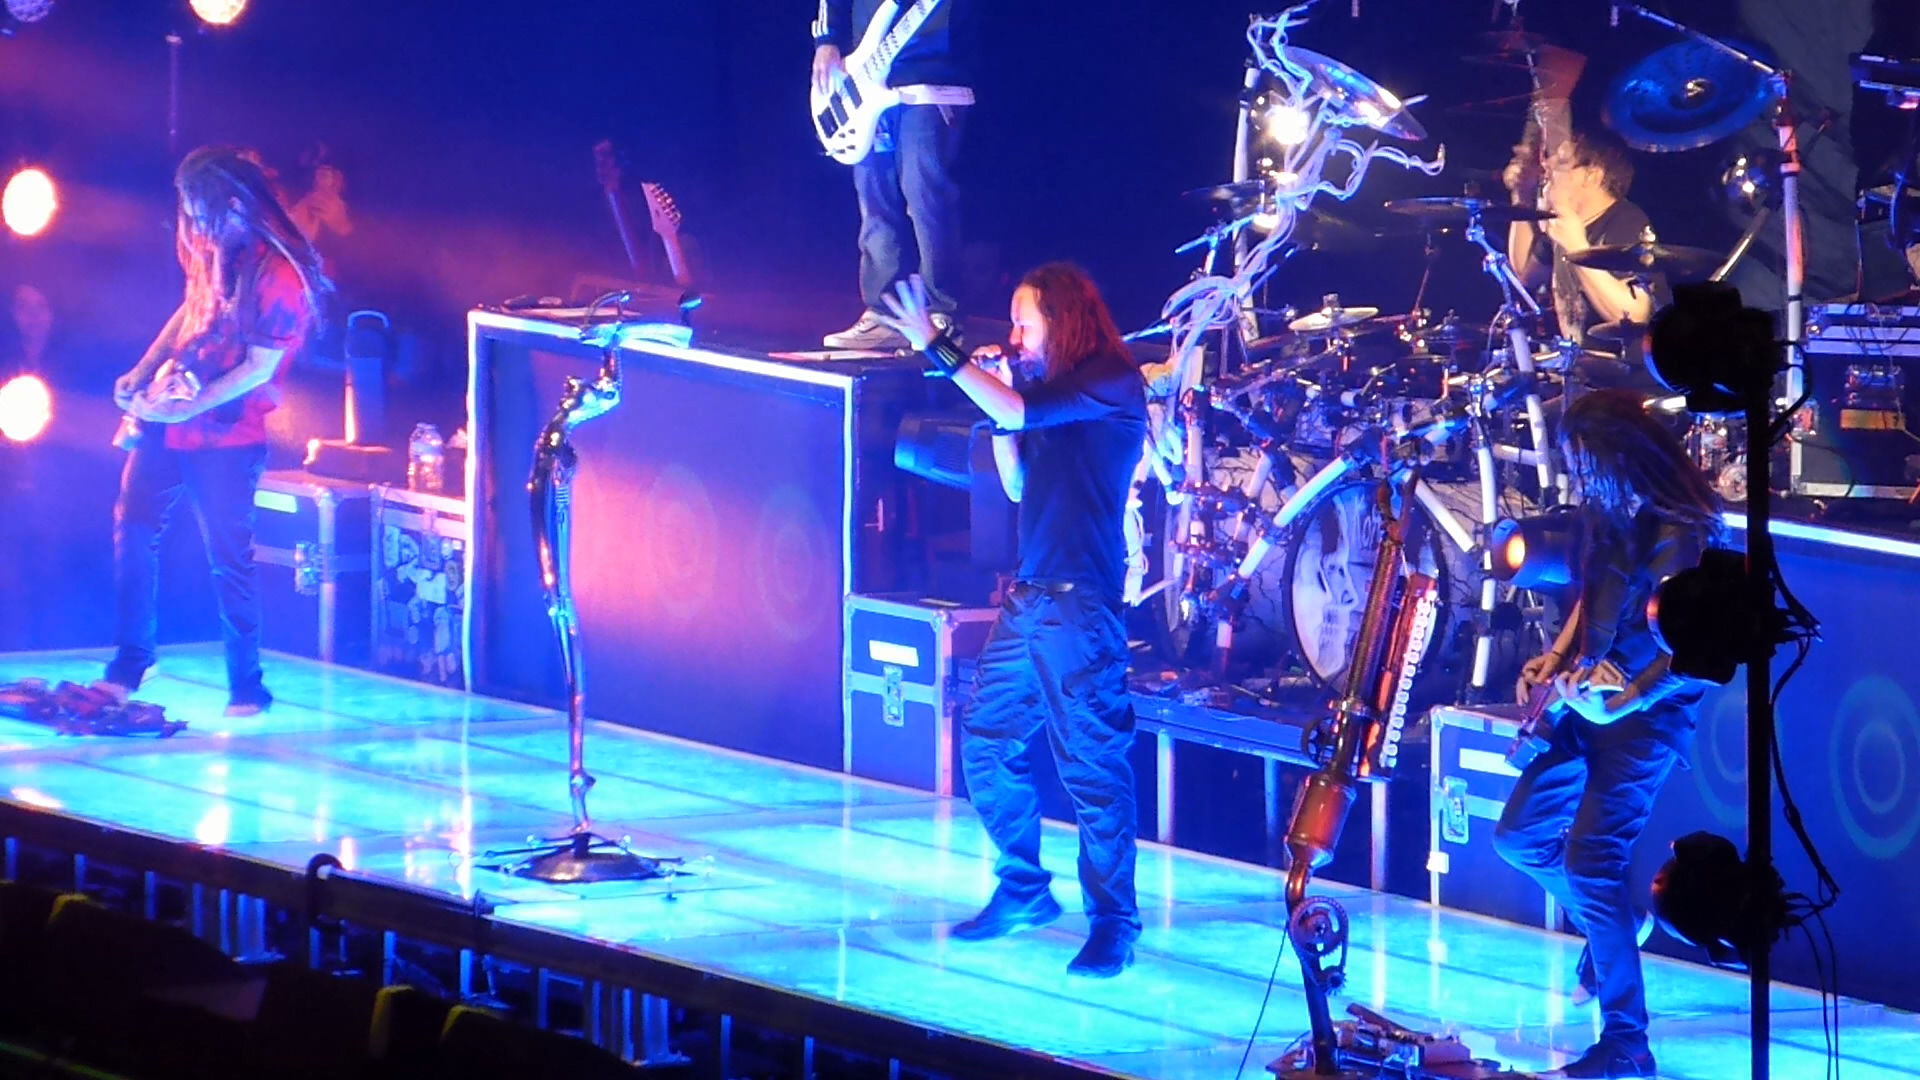 KoRn 2014-11-08 Alliant Energy Center, Madison, WI, USA (Kattatonia_x HD 1080)